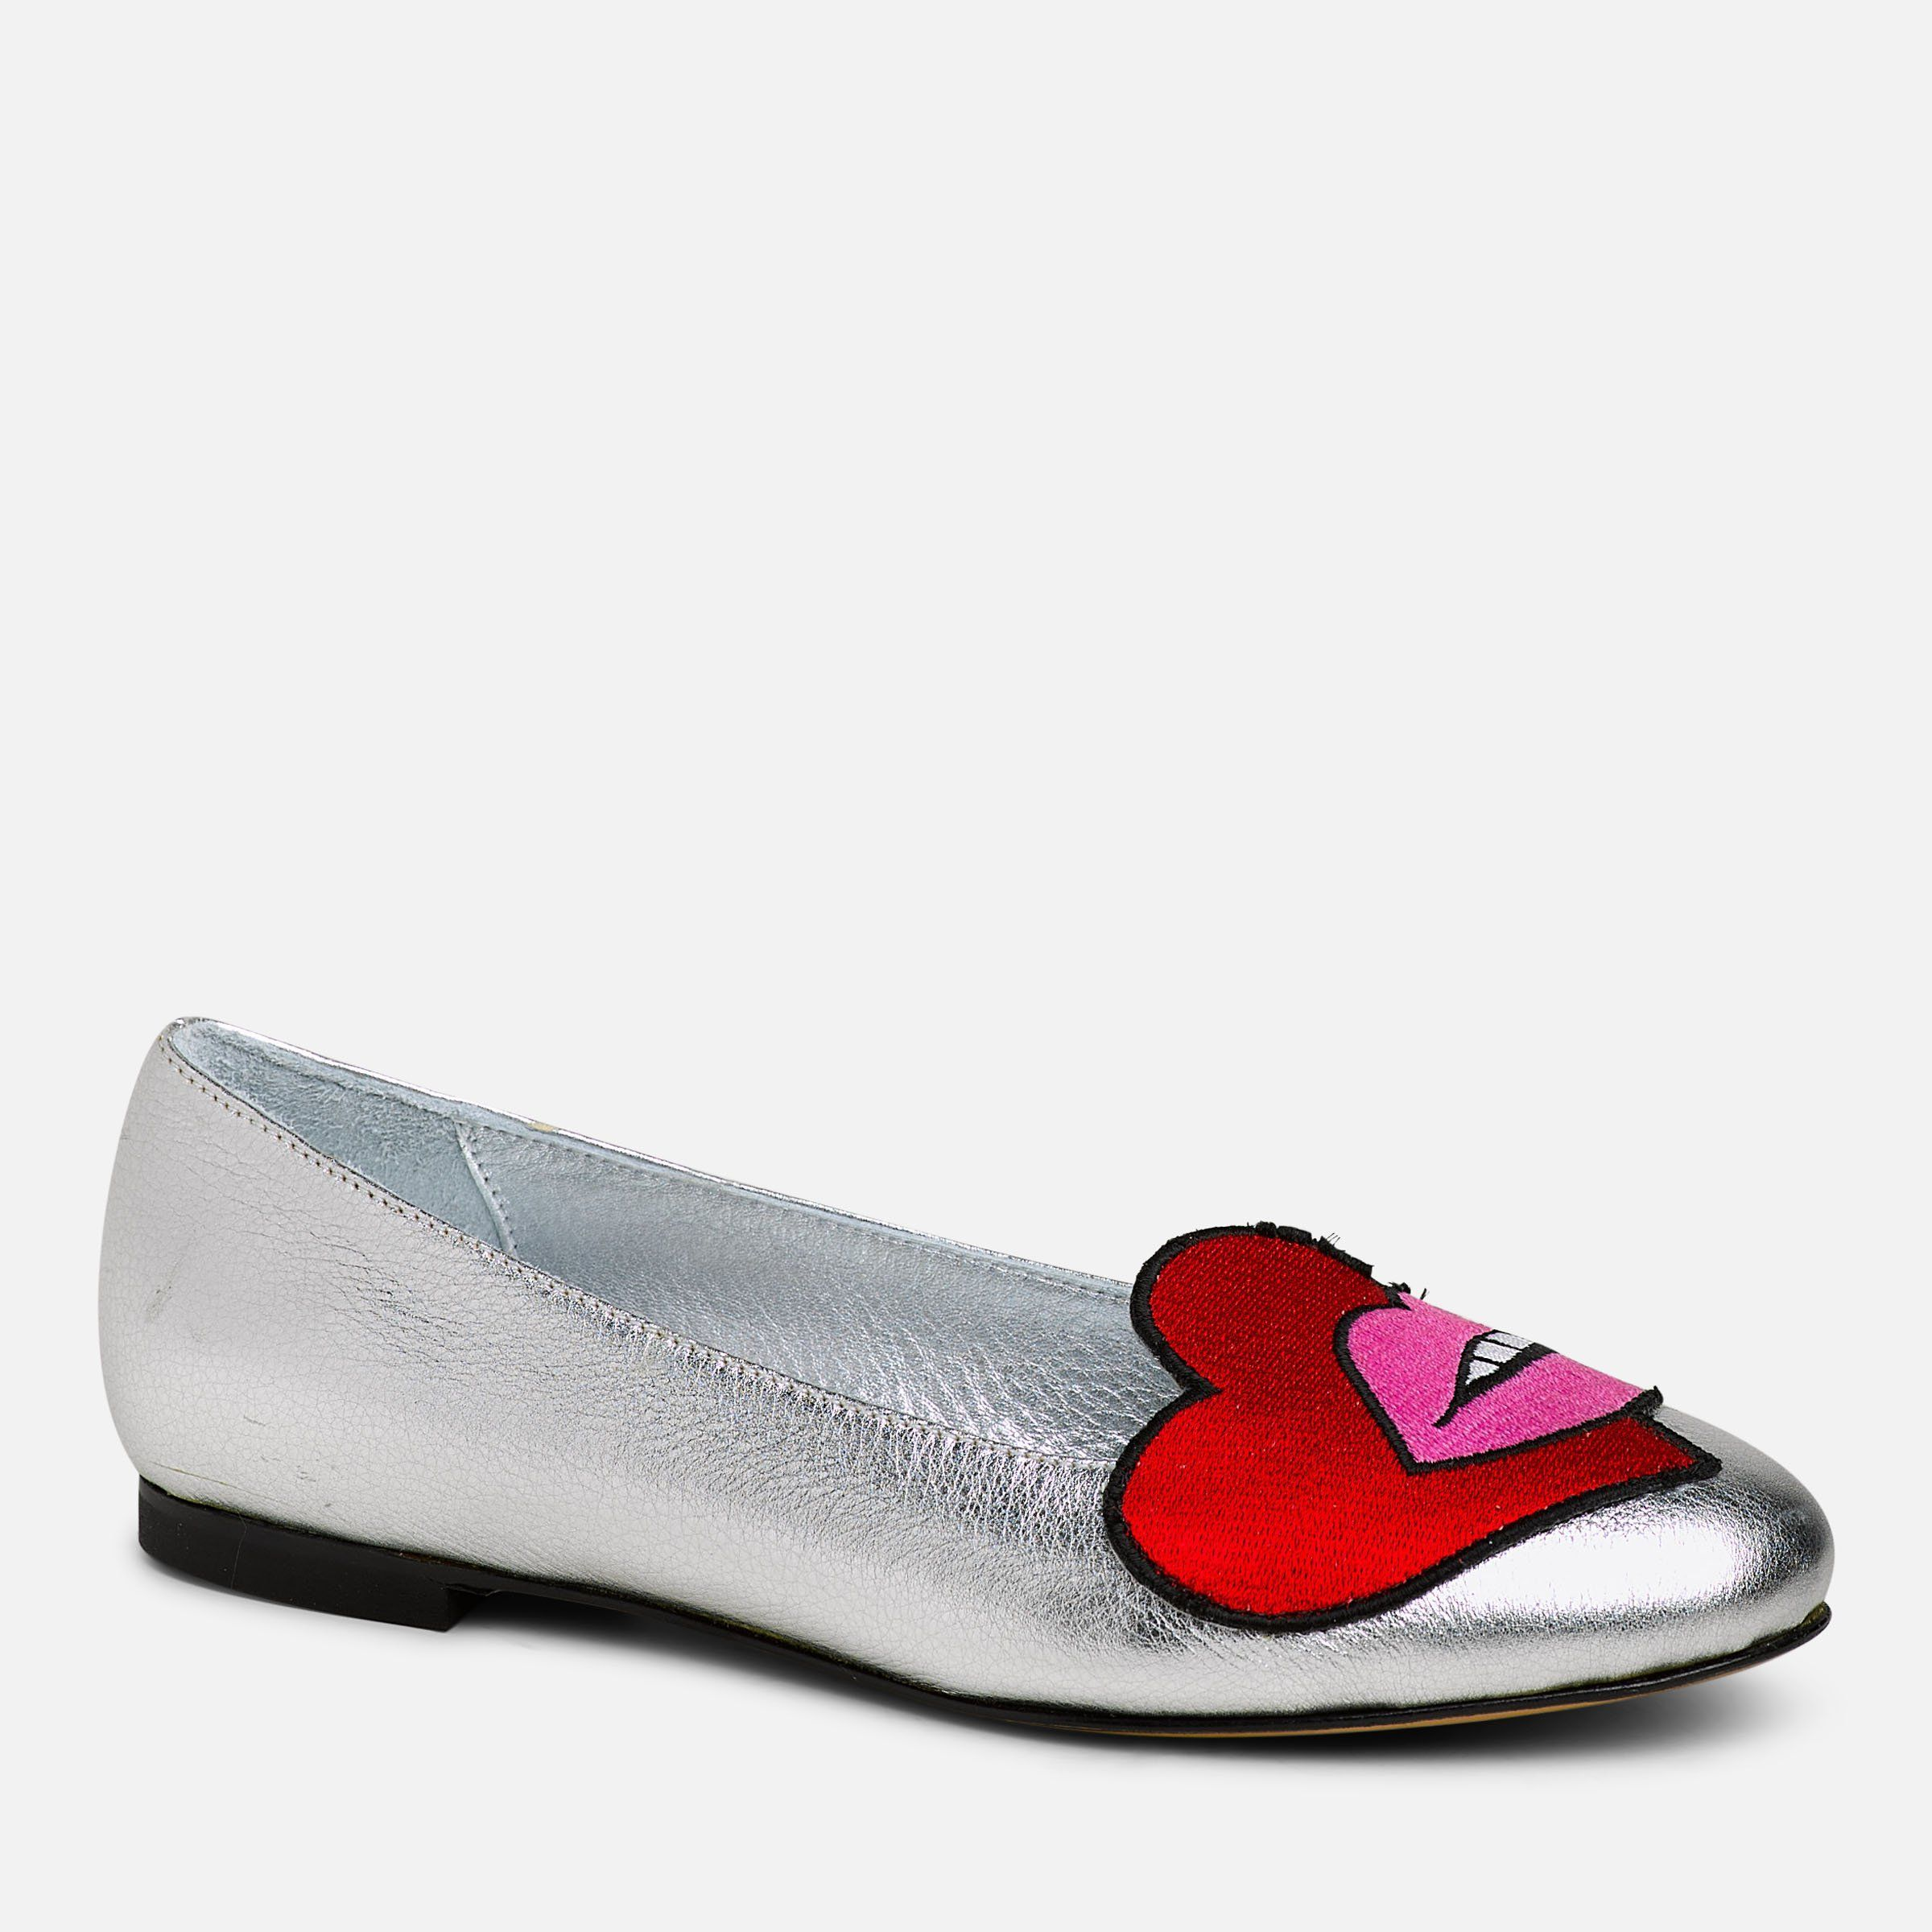 COCKTAIL HEART FLATS